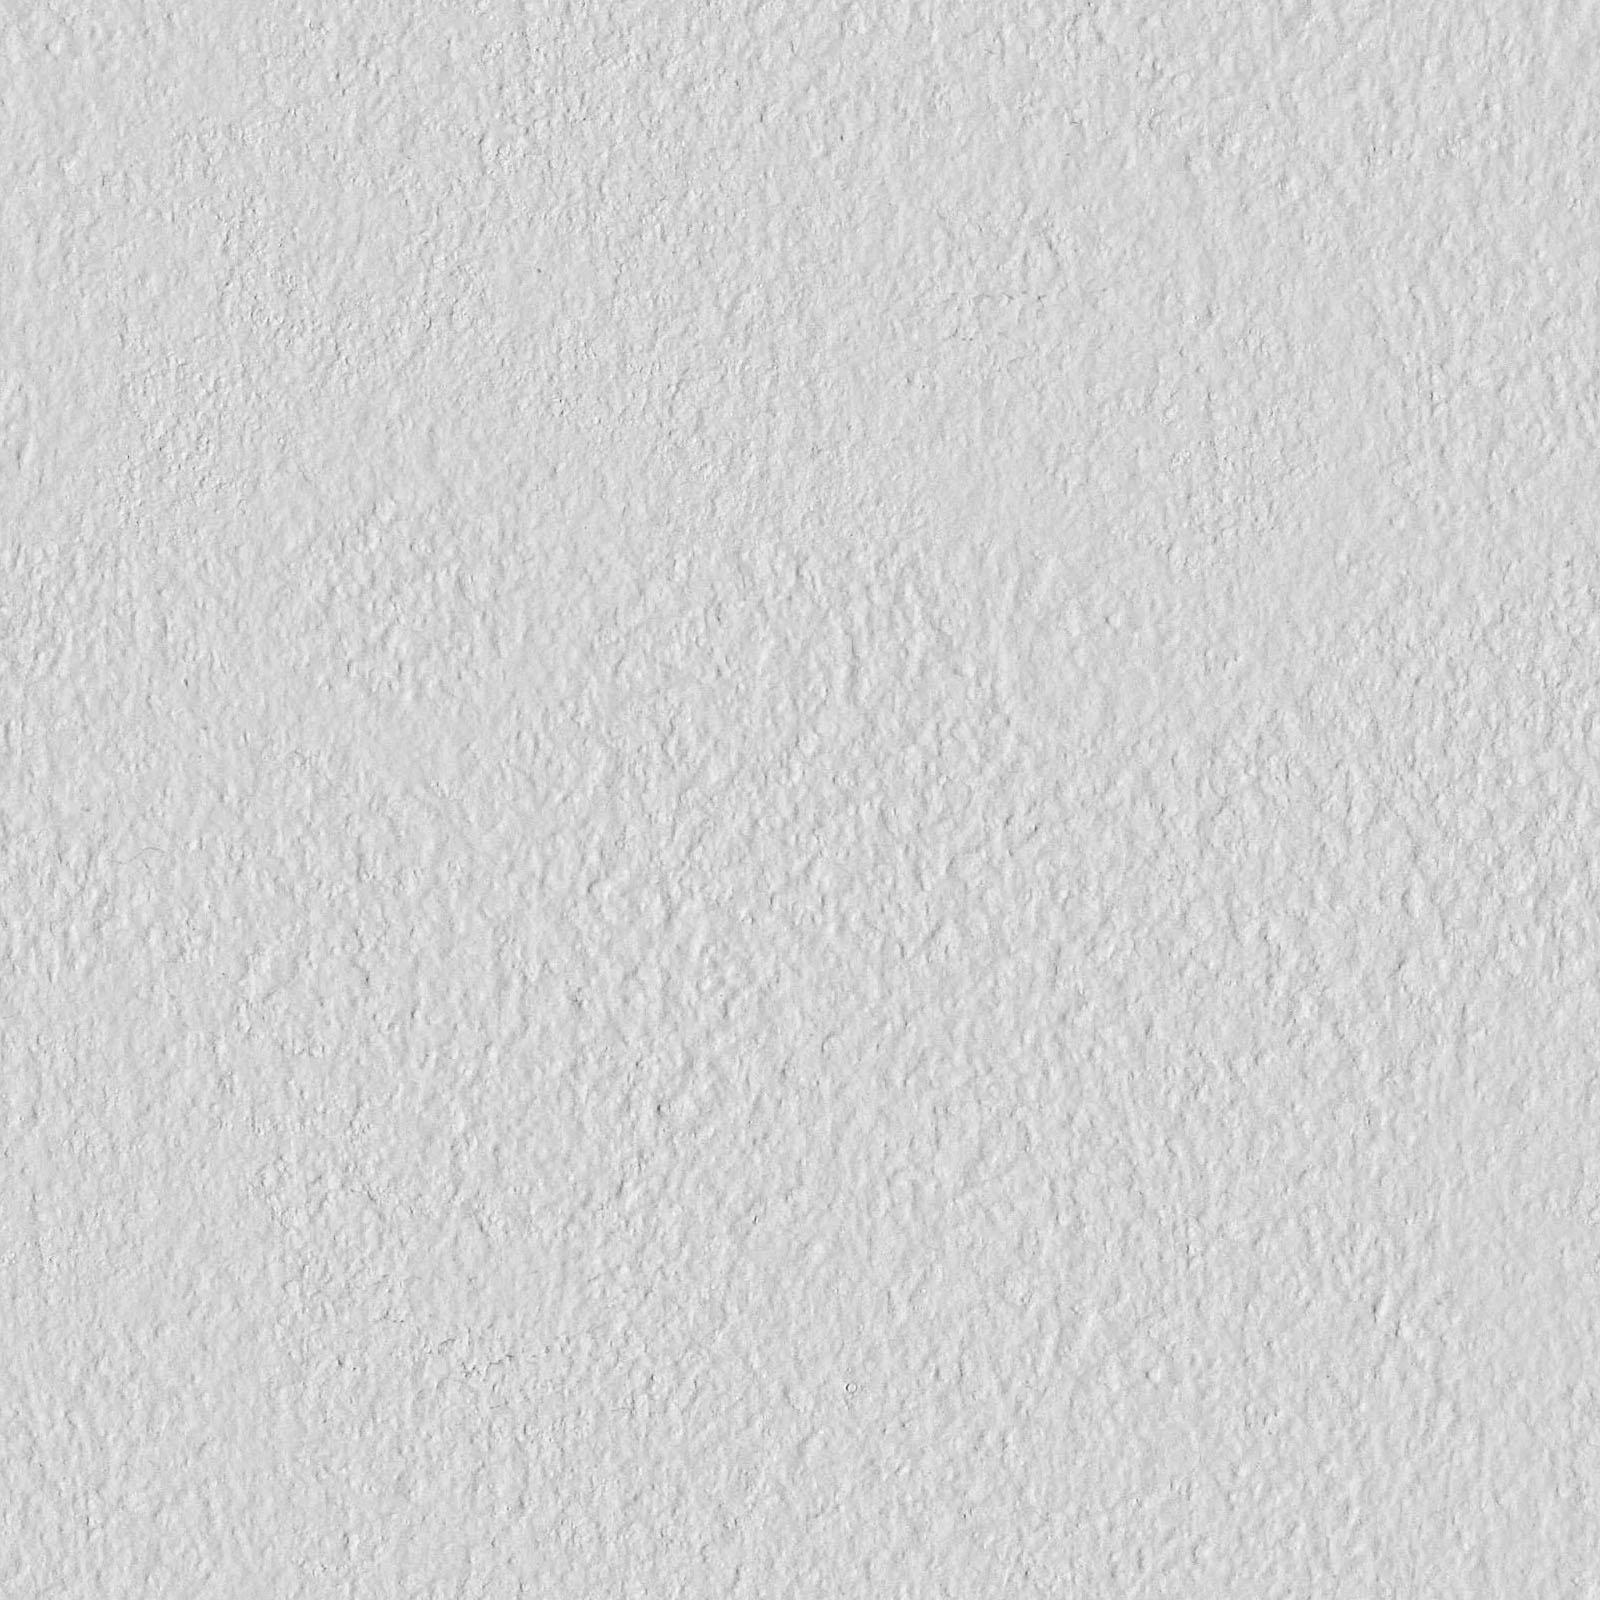 Seamless White Wall Paint Stucco Plaster With Maps